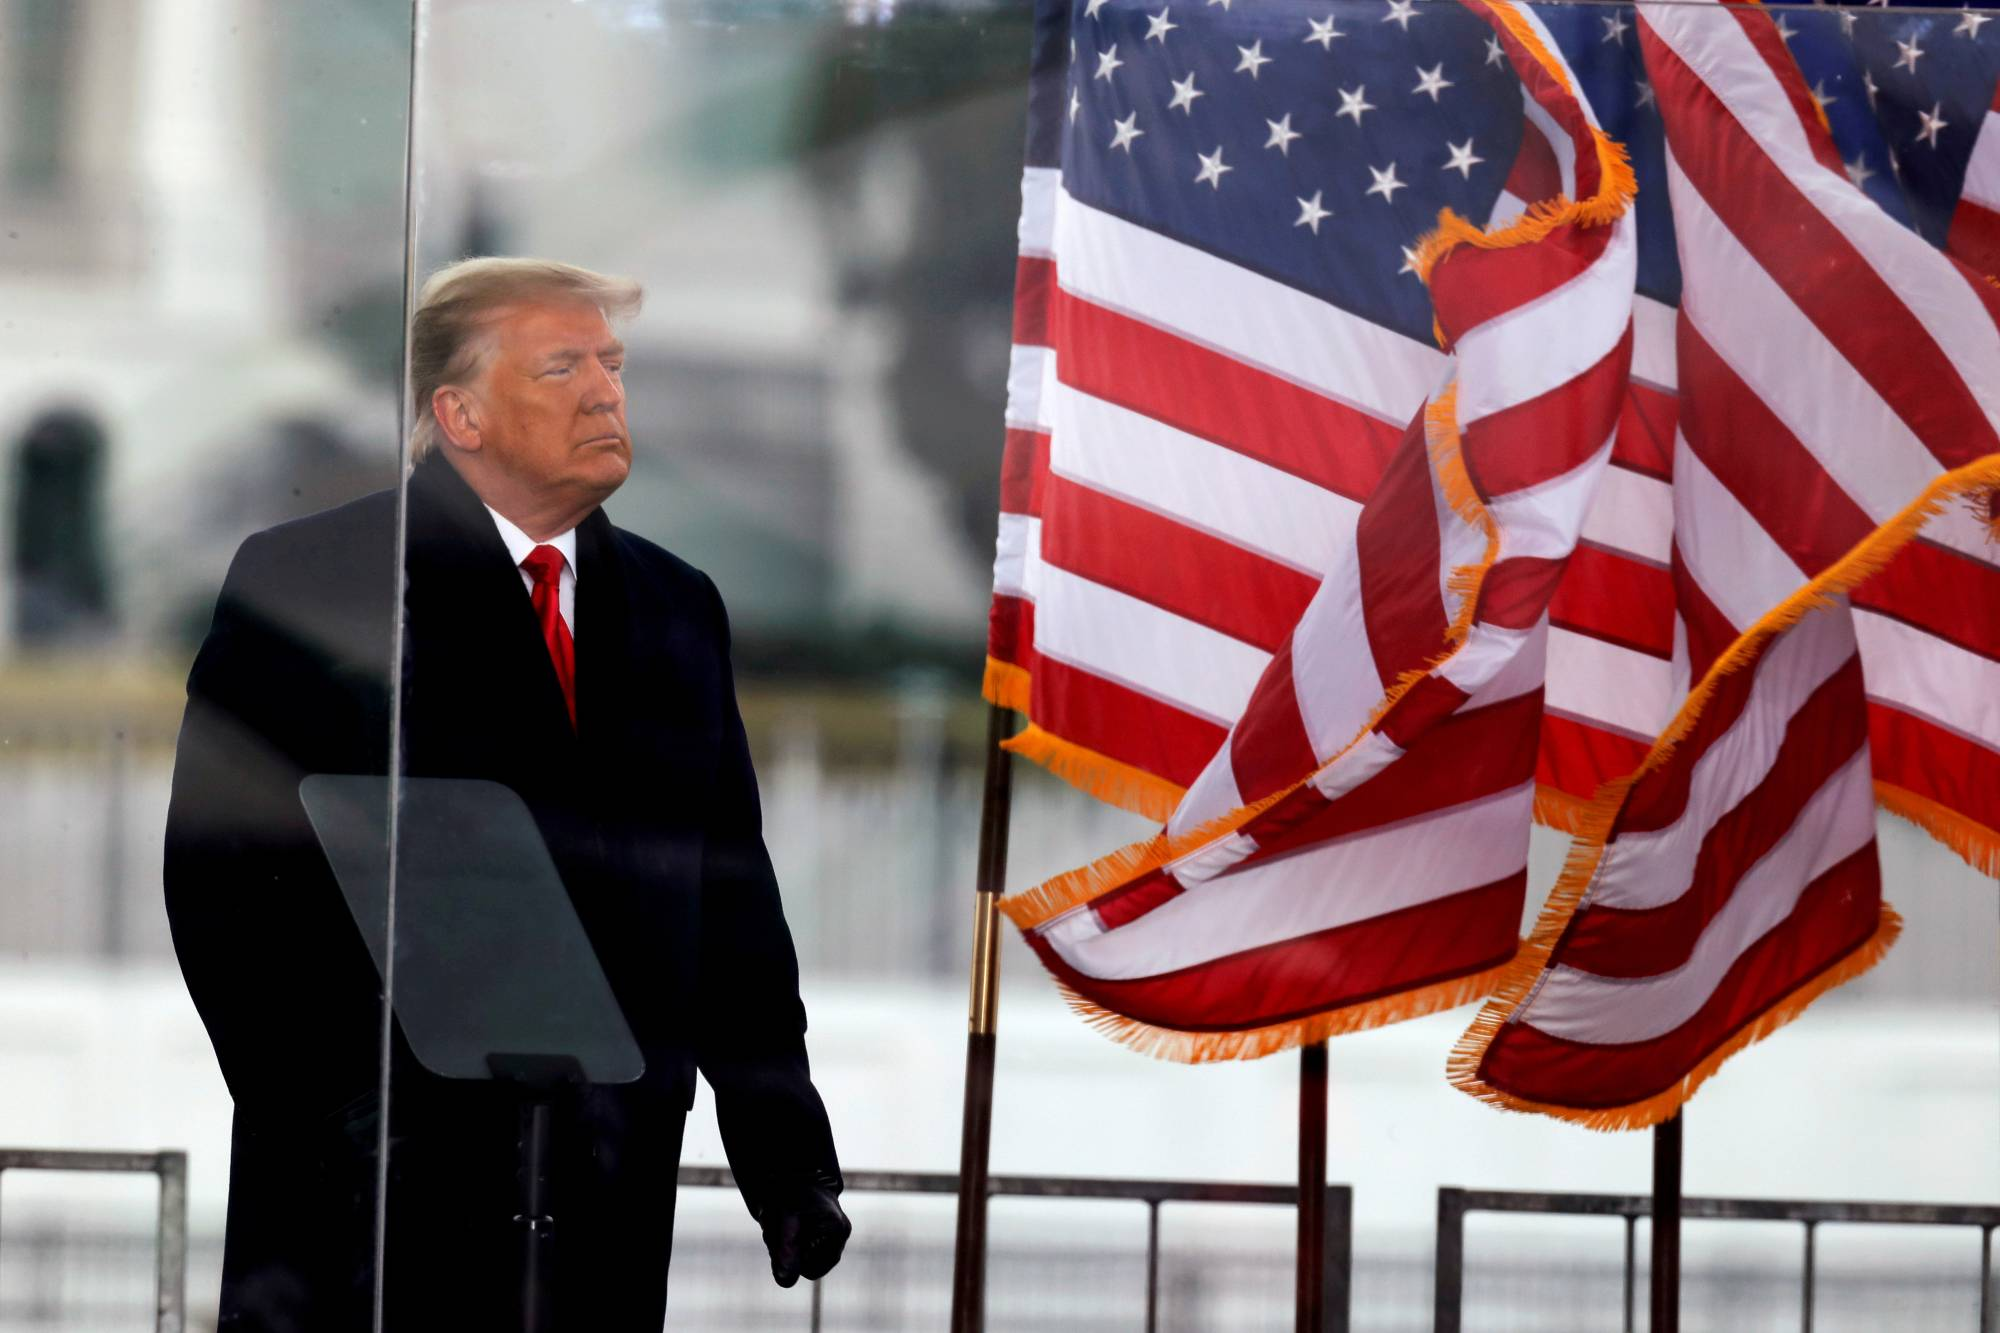 U.S. President Donald Trump looks on at the end of his speech during a rally to contest the certification of the 2020 U.S. presidential election results by Congress in Washington on Jan. 6. | REUTERS